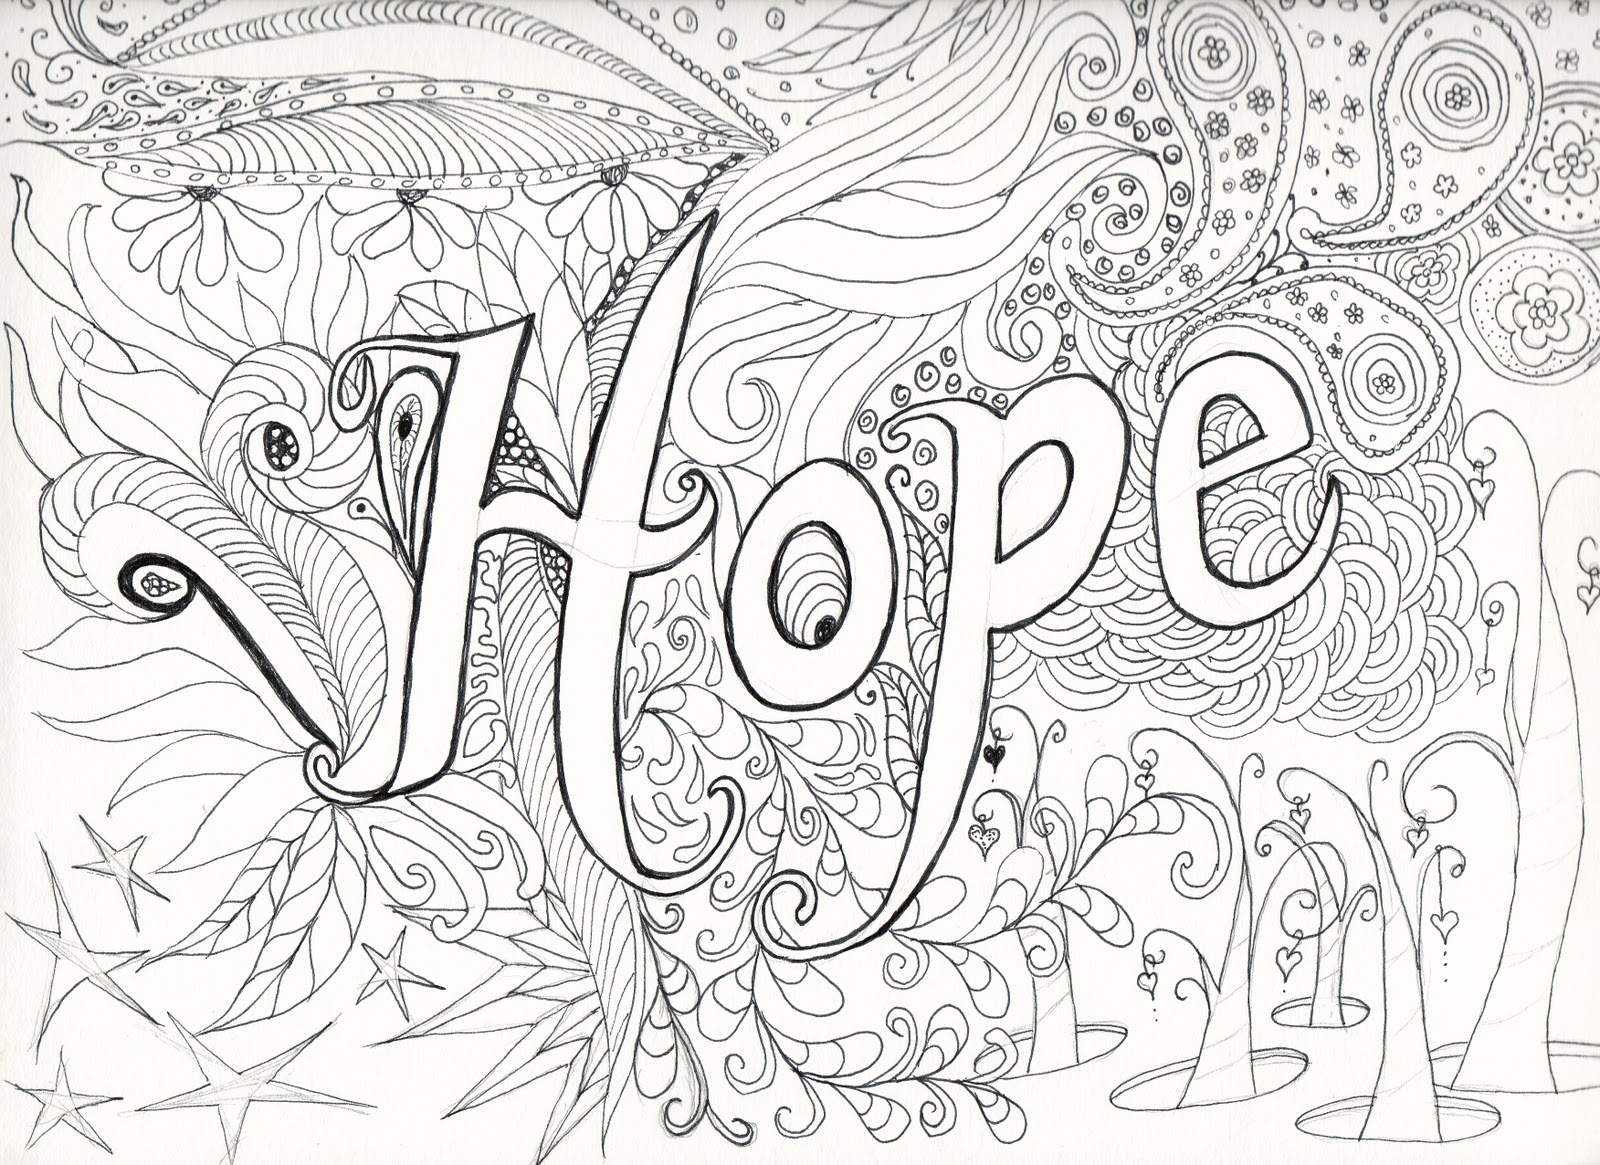 Difficult Hard Coloring Pages Printable Gallery – Free Coloring Sheets